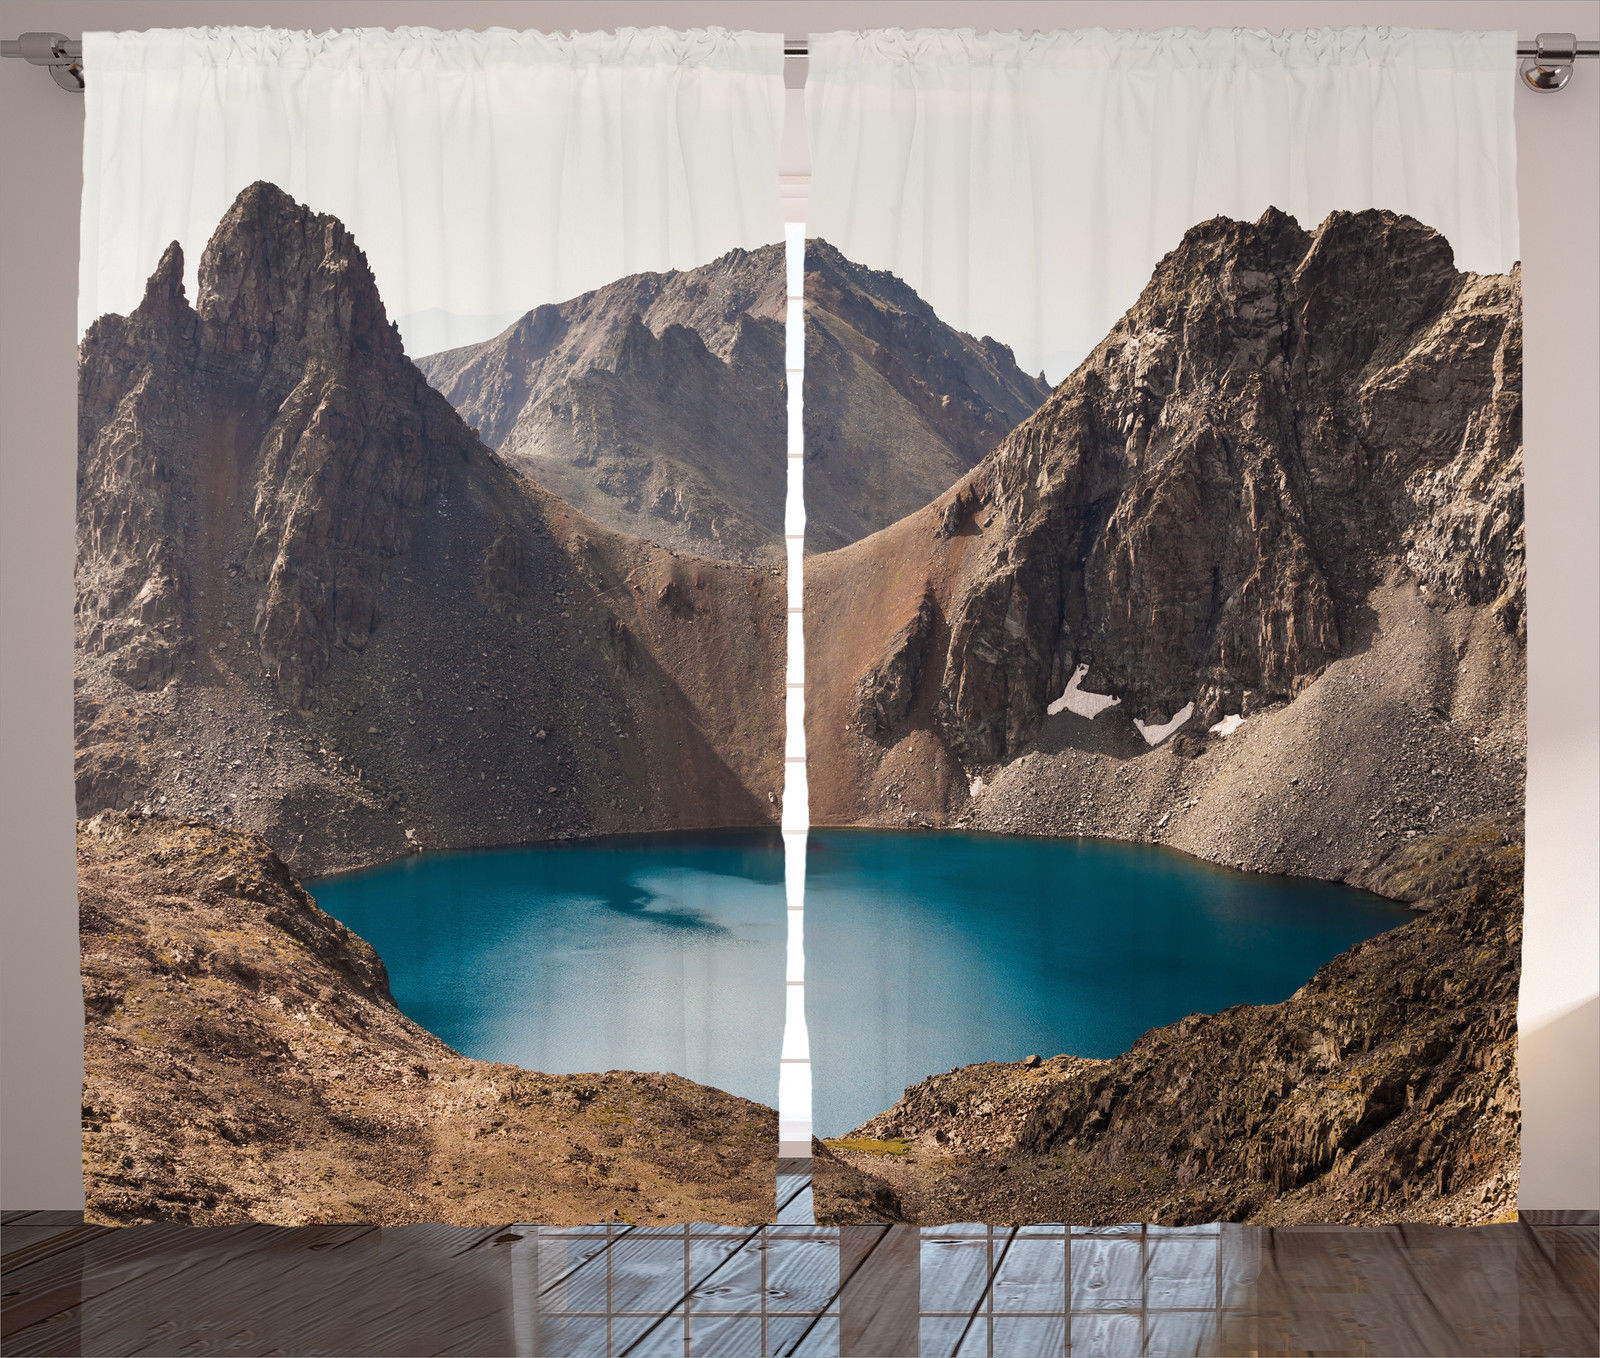 Click here to buy Lake House Decor Curtains 2 Panels Set, Secret Lake On The Rock Mountain Resort Stunning Nature Earth Landscape Peace Photo, Living Room... by Kozmos.